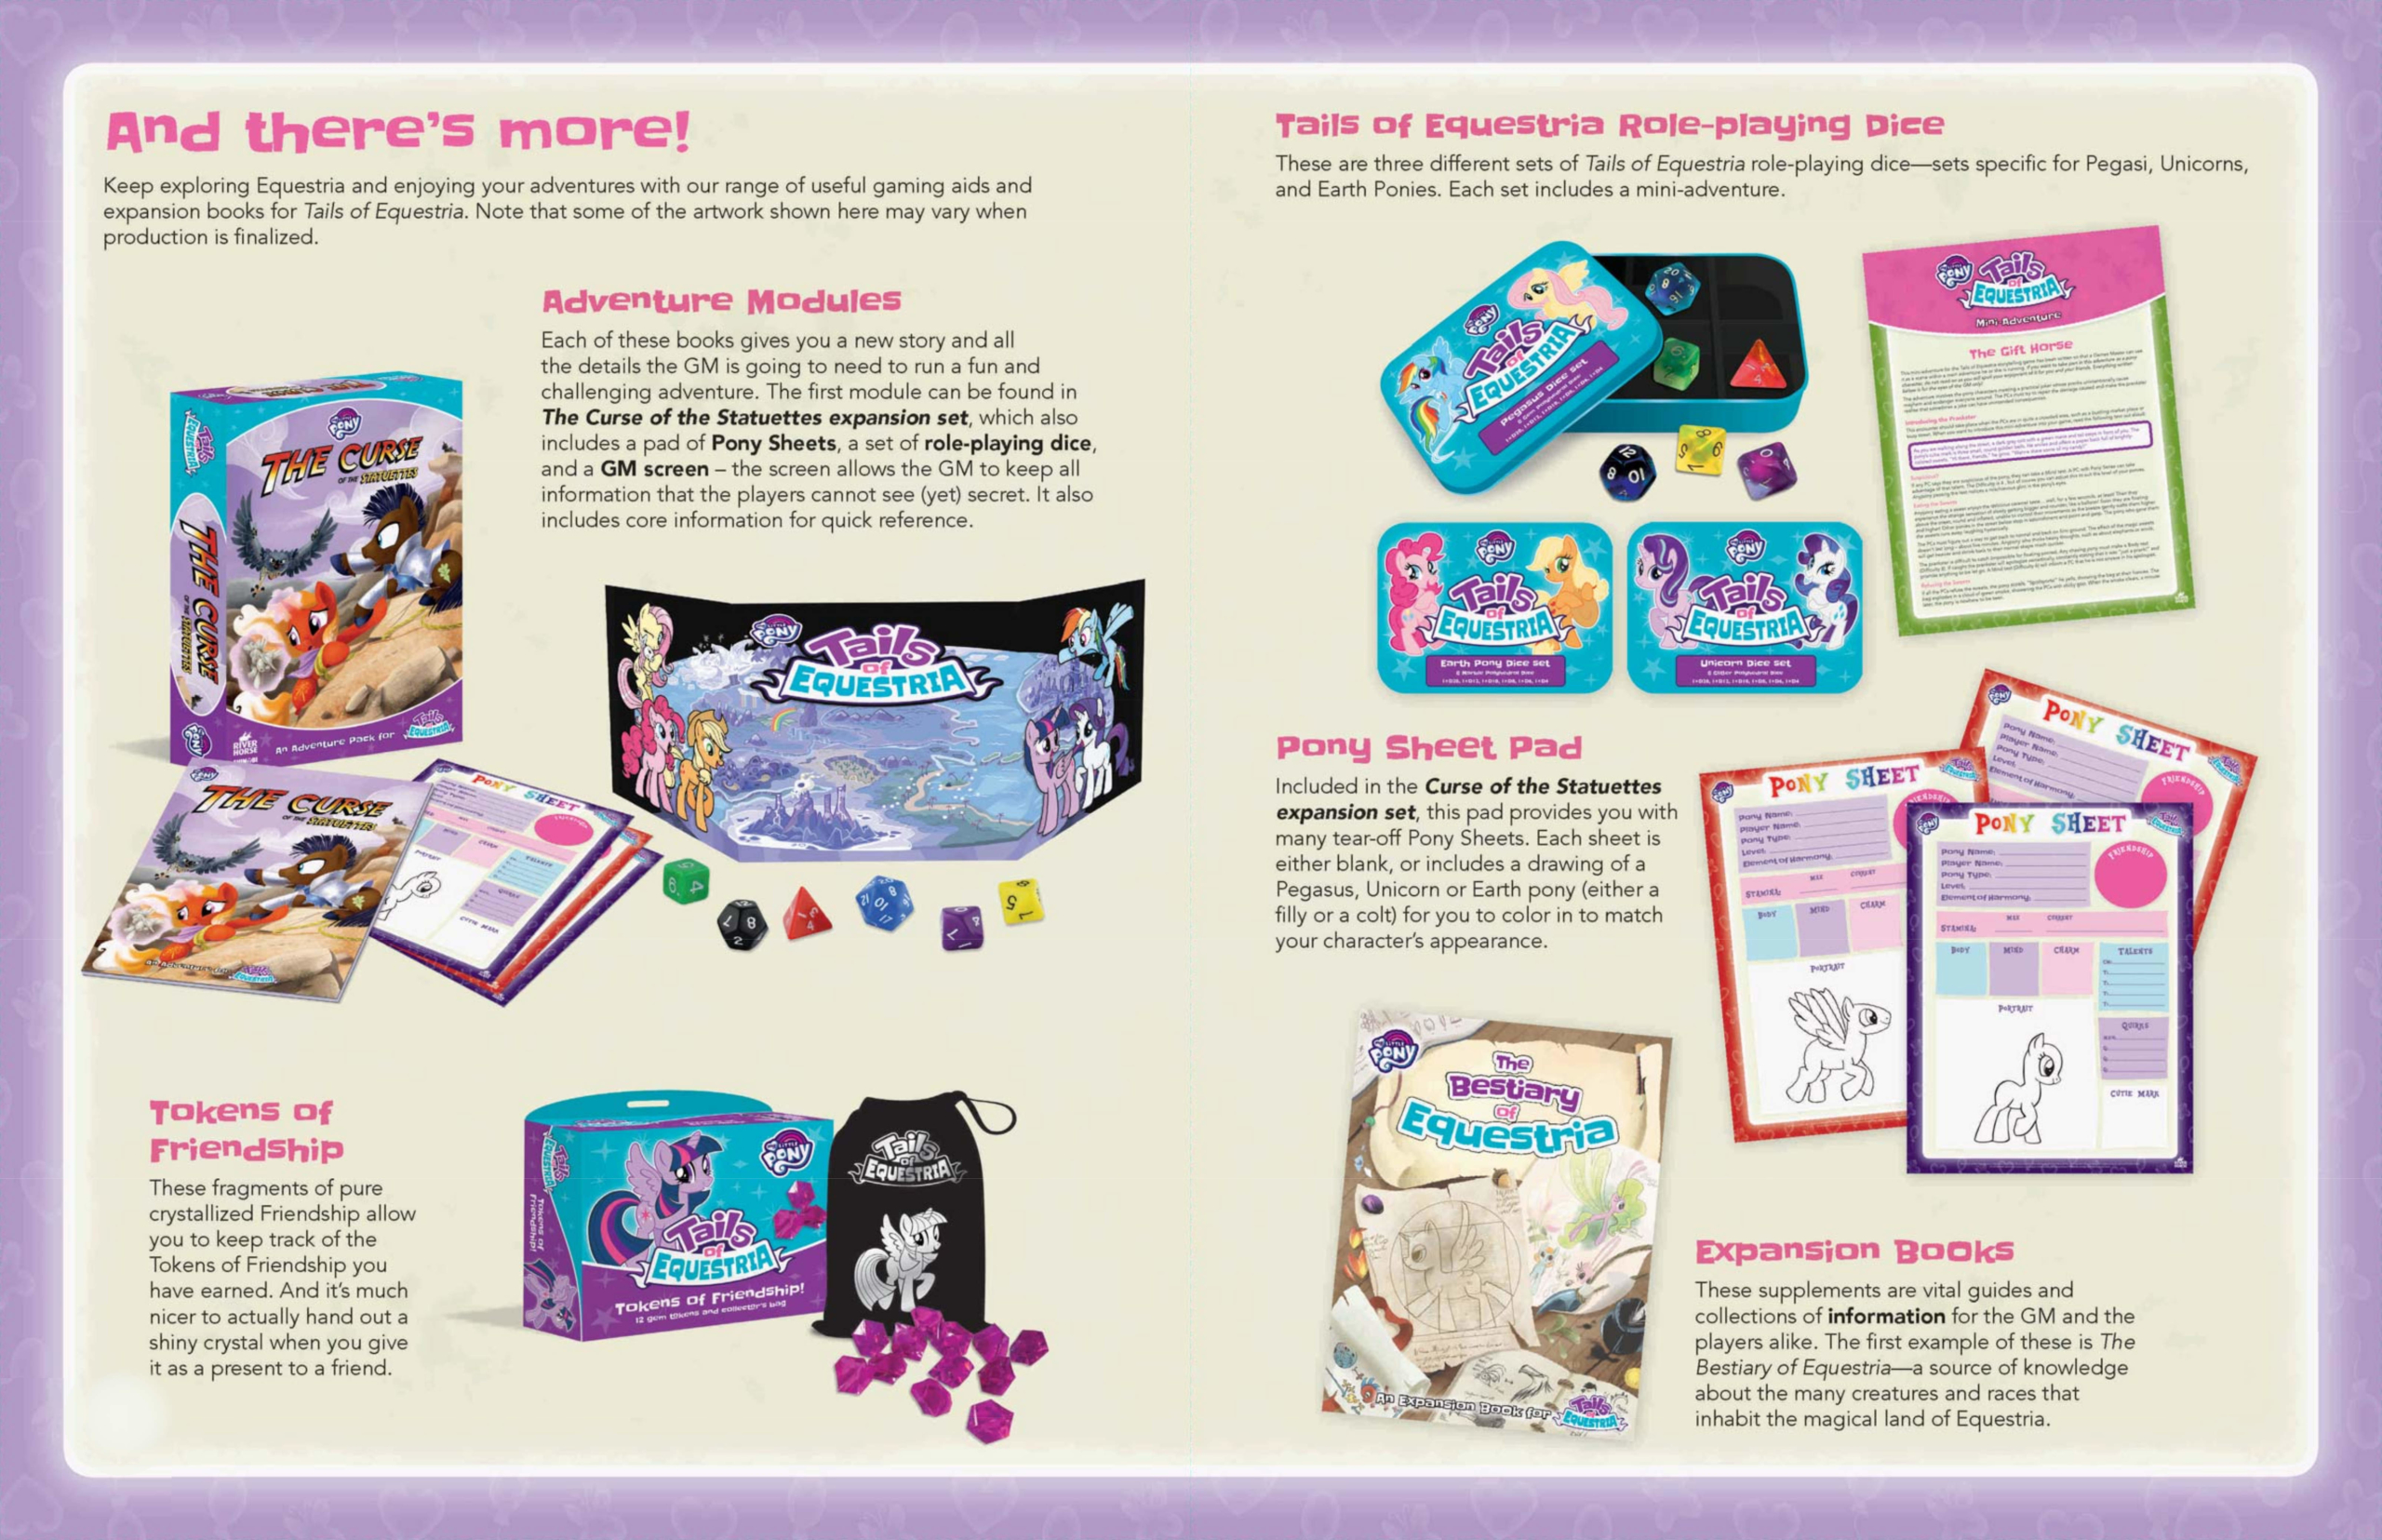 Product Preview of the Tails of Equestria range by River Horse